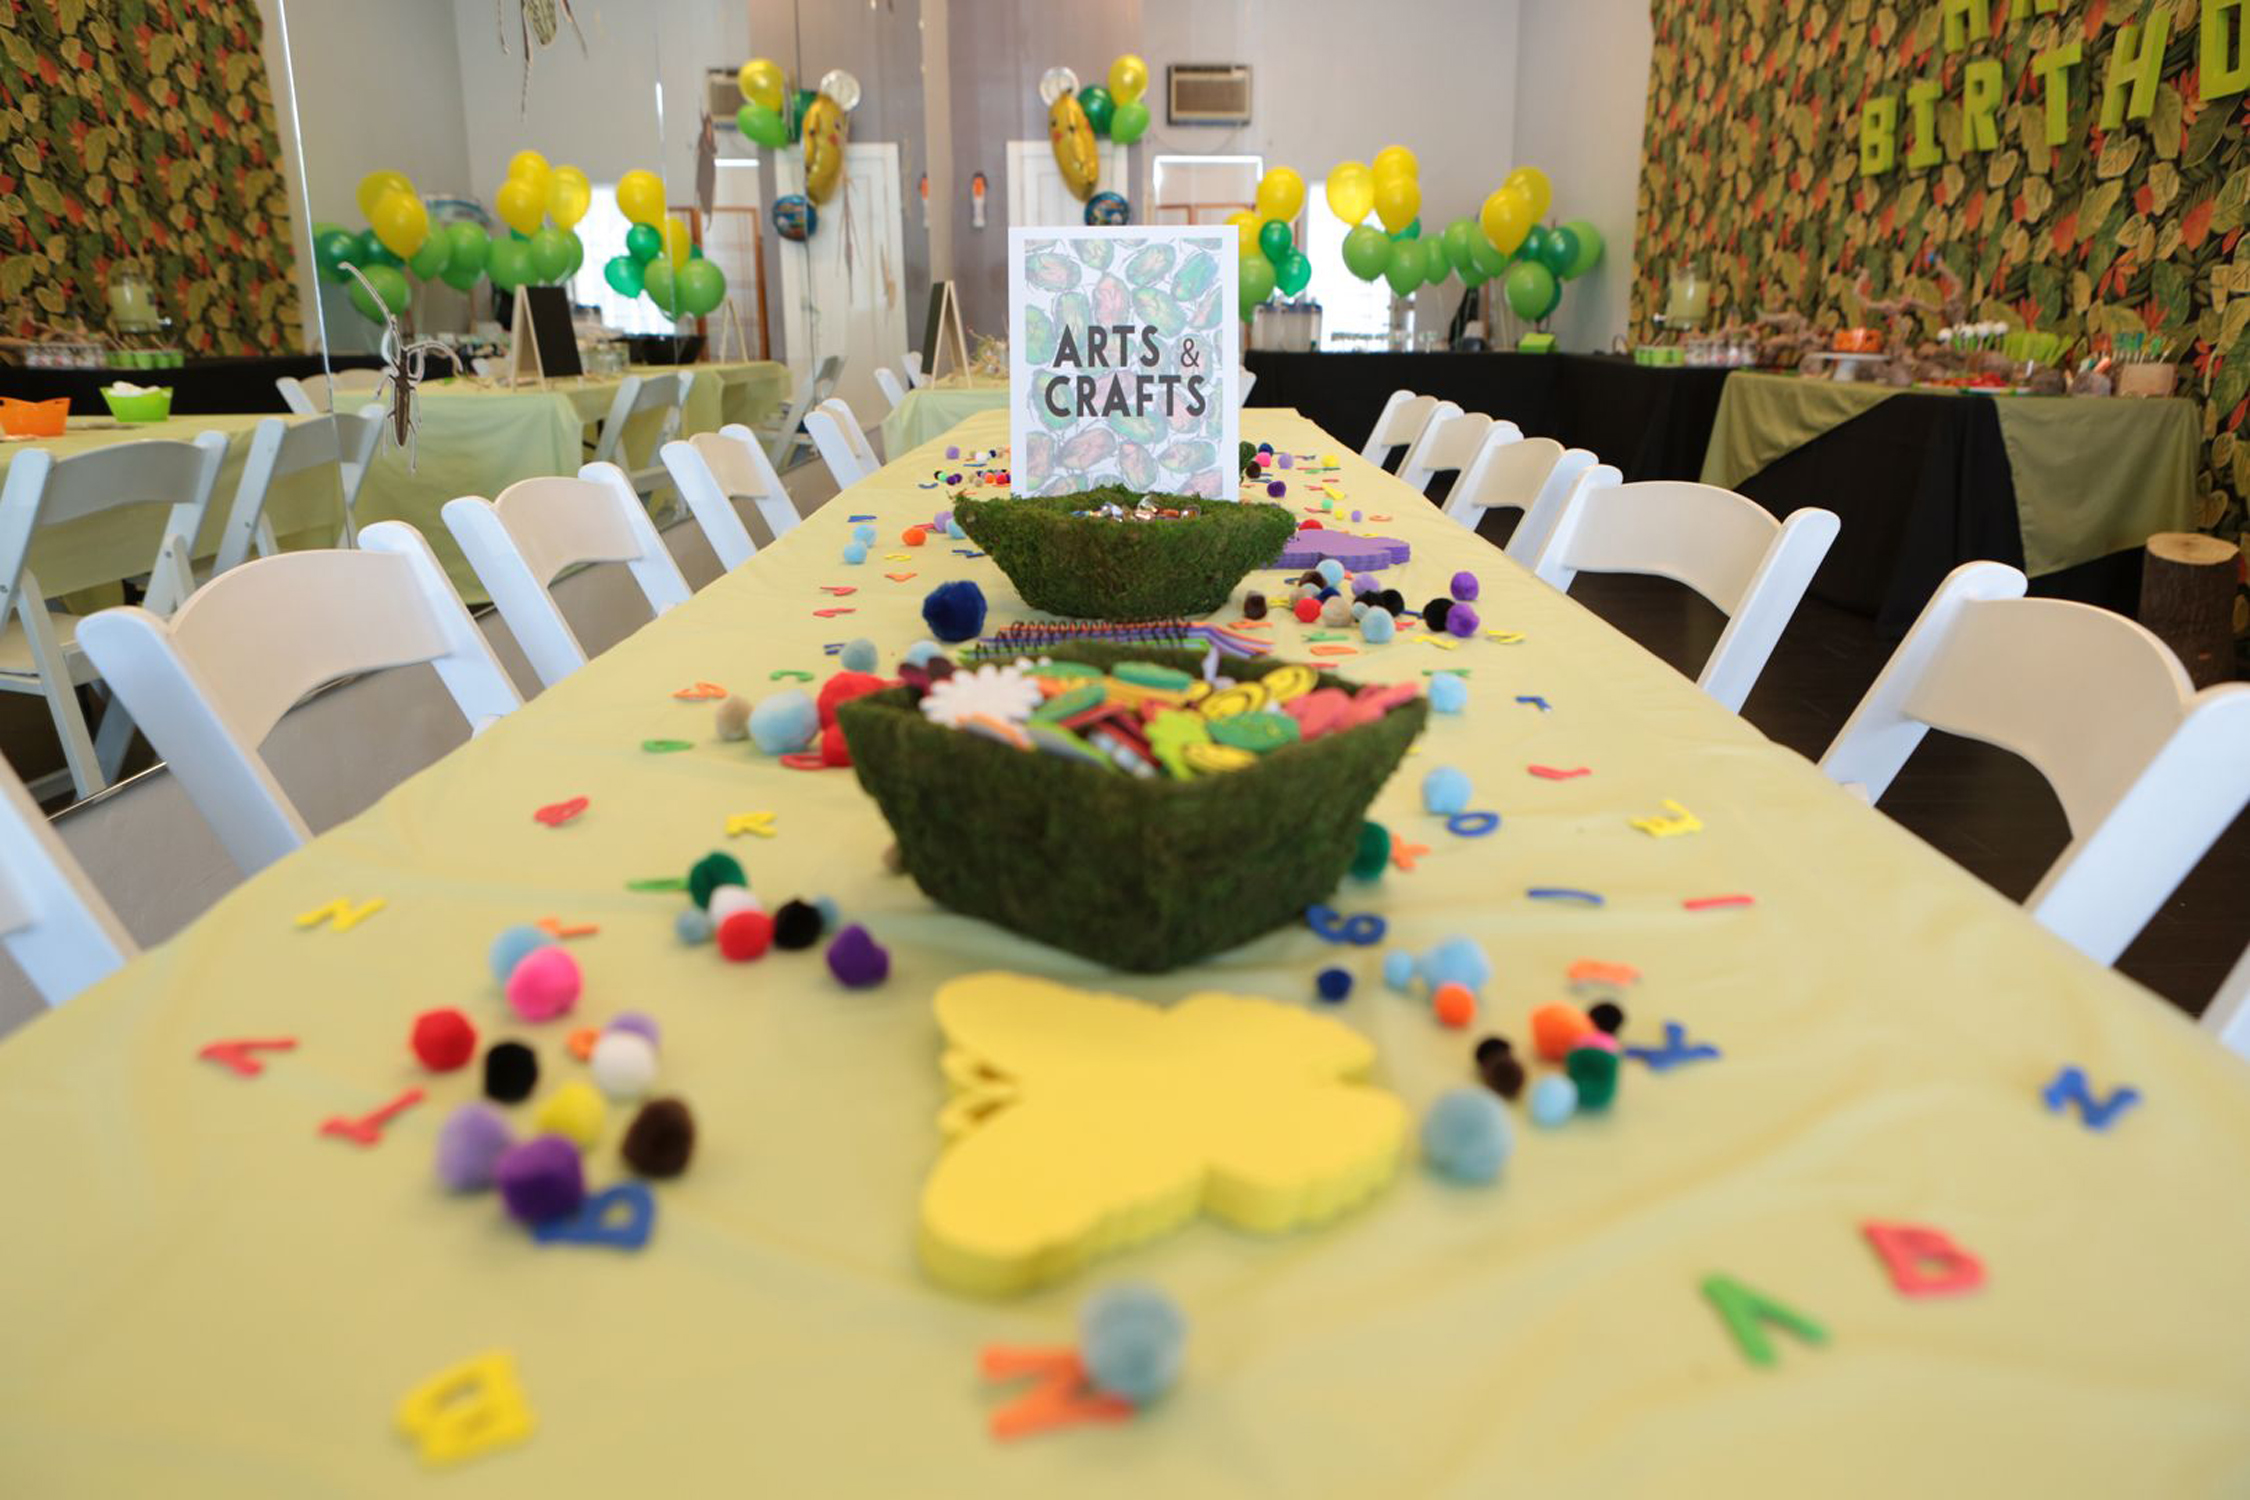 tarynco-events-bug-themed-kids-birthday-party-artsncrafts-station.jpg